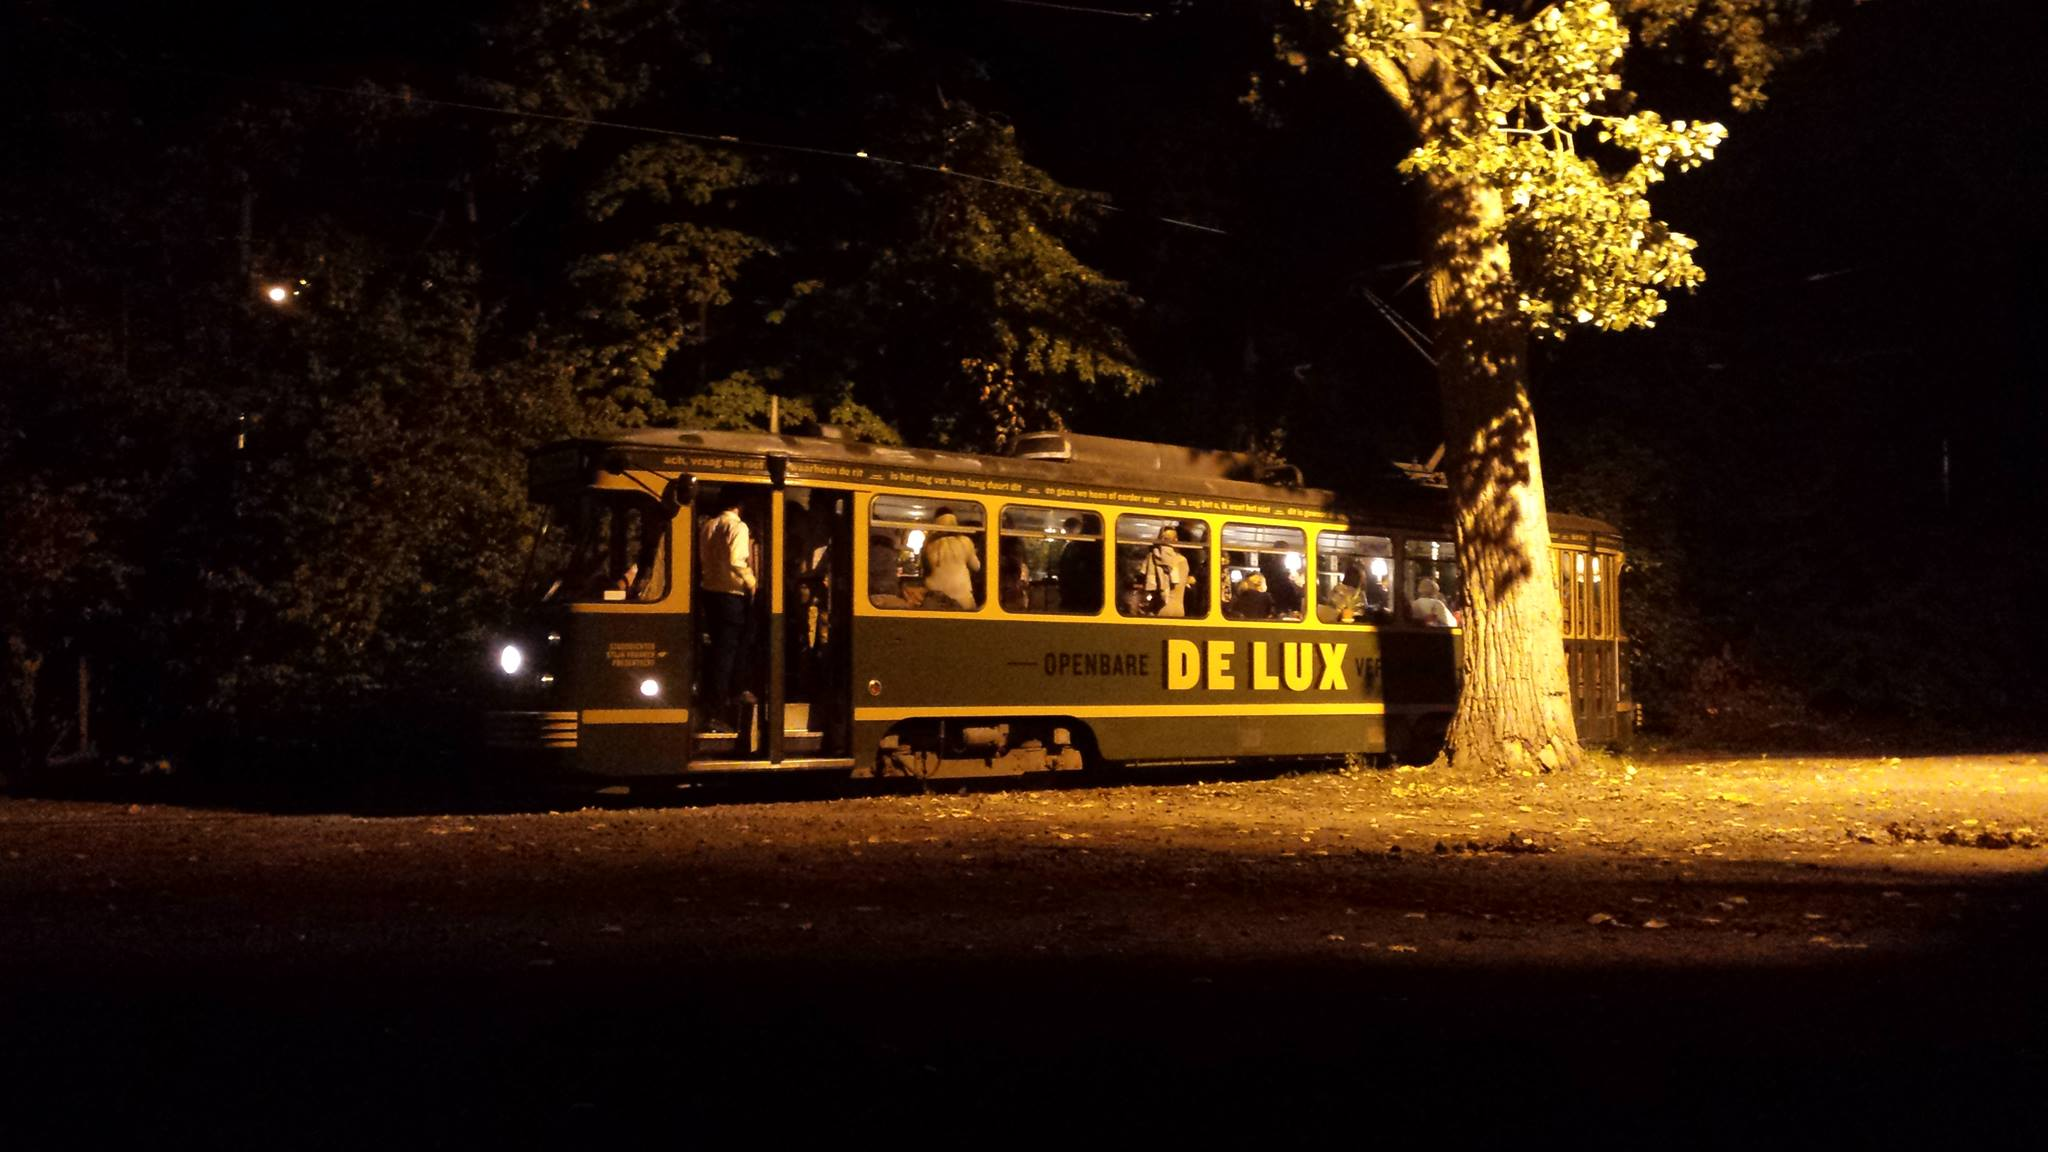 Tram DE LUX by night